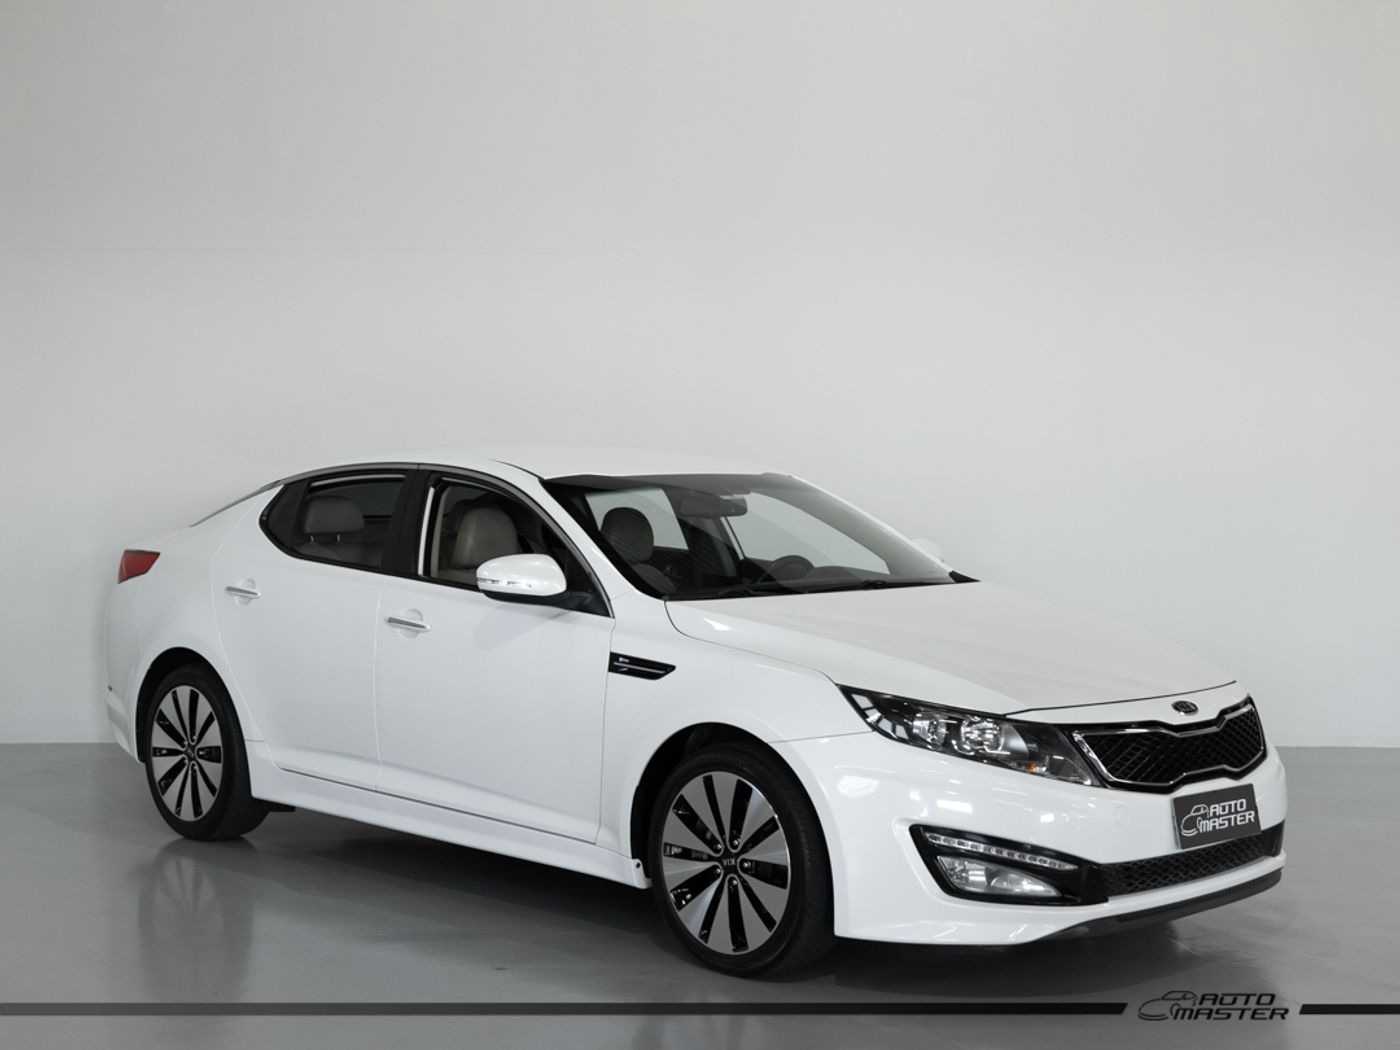 Kia Motors OPTIMA 2.4 16V 180cv Aut.